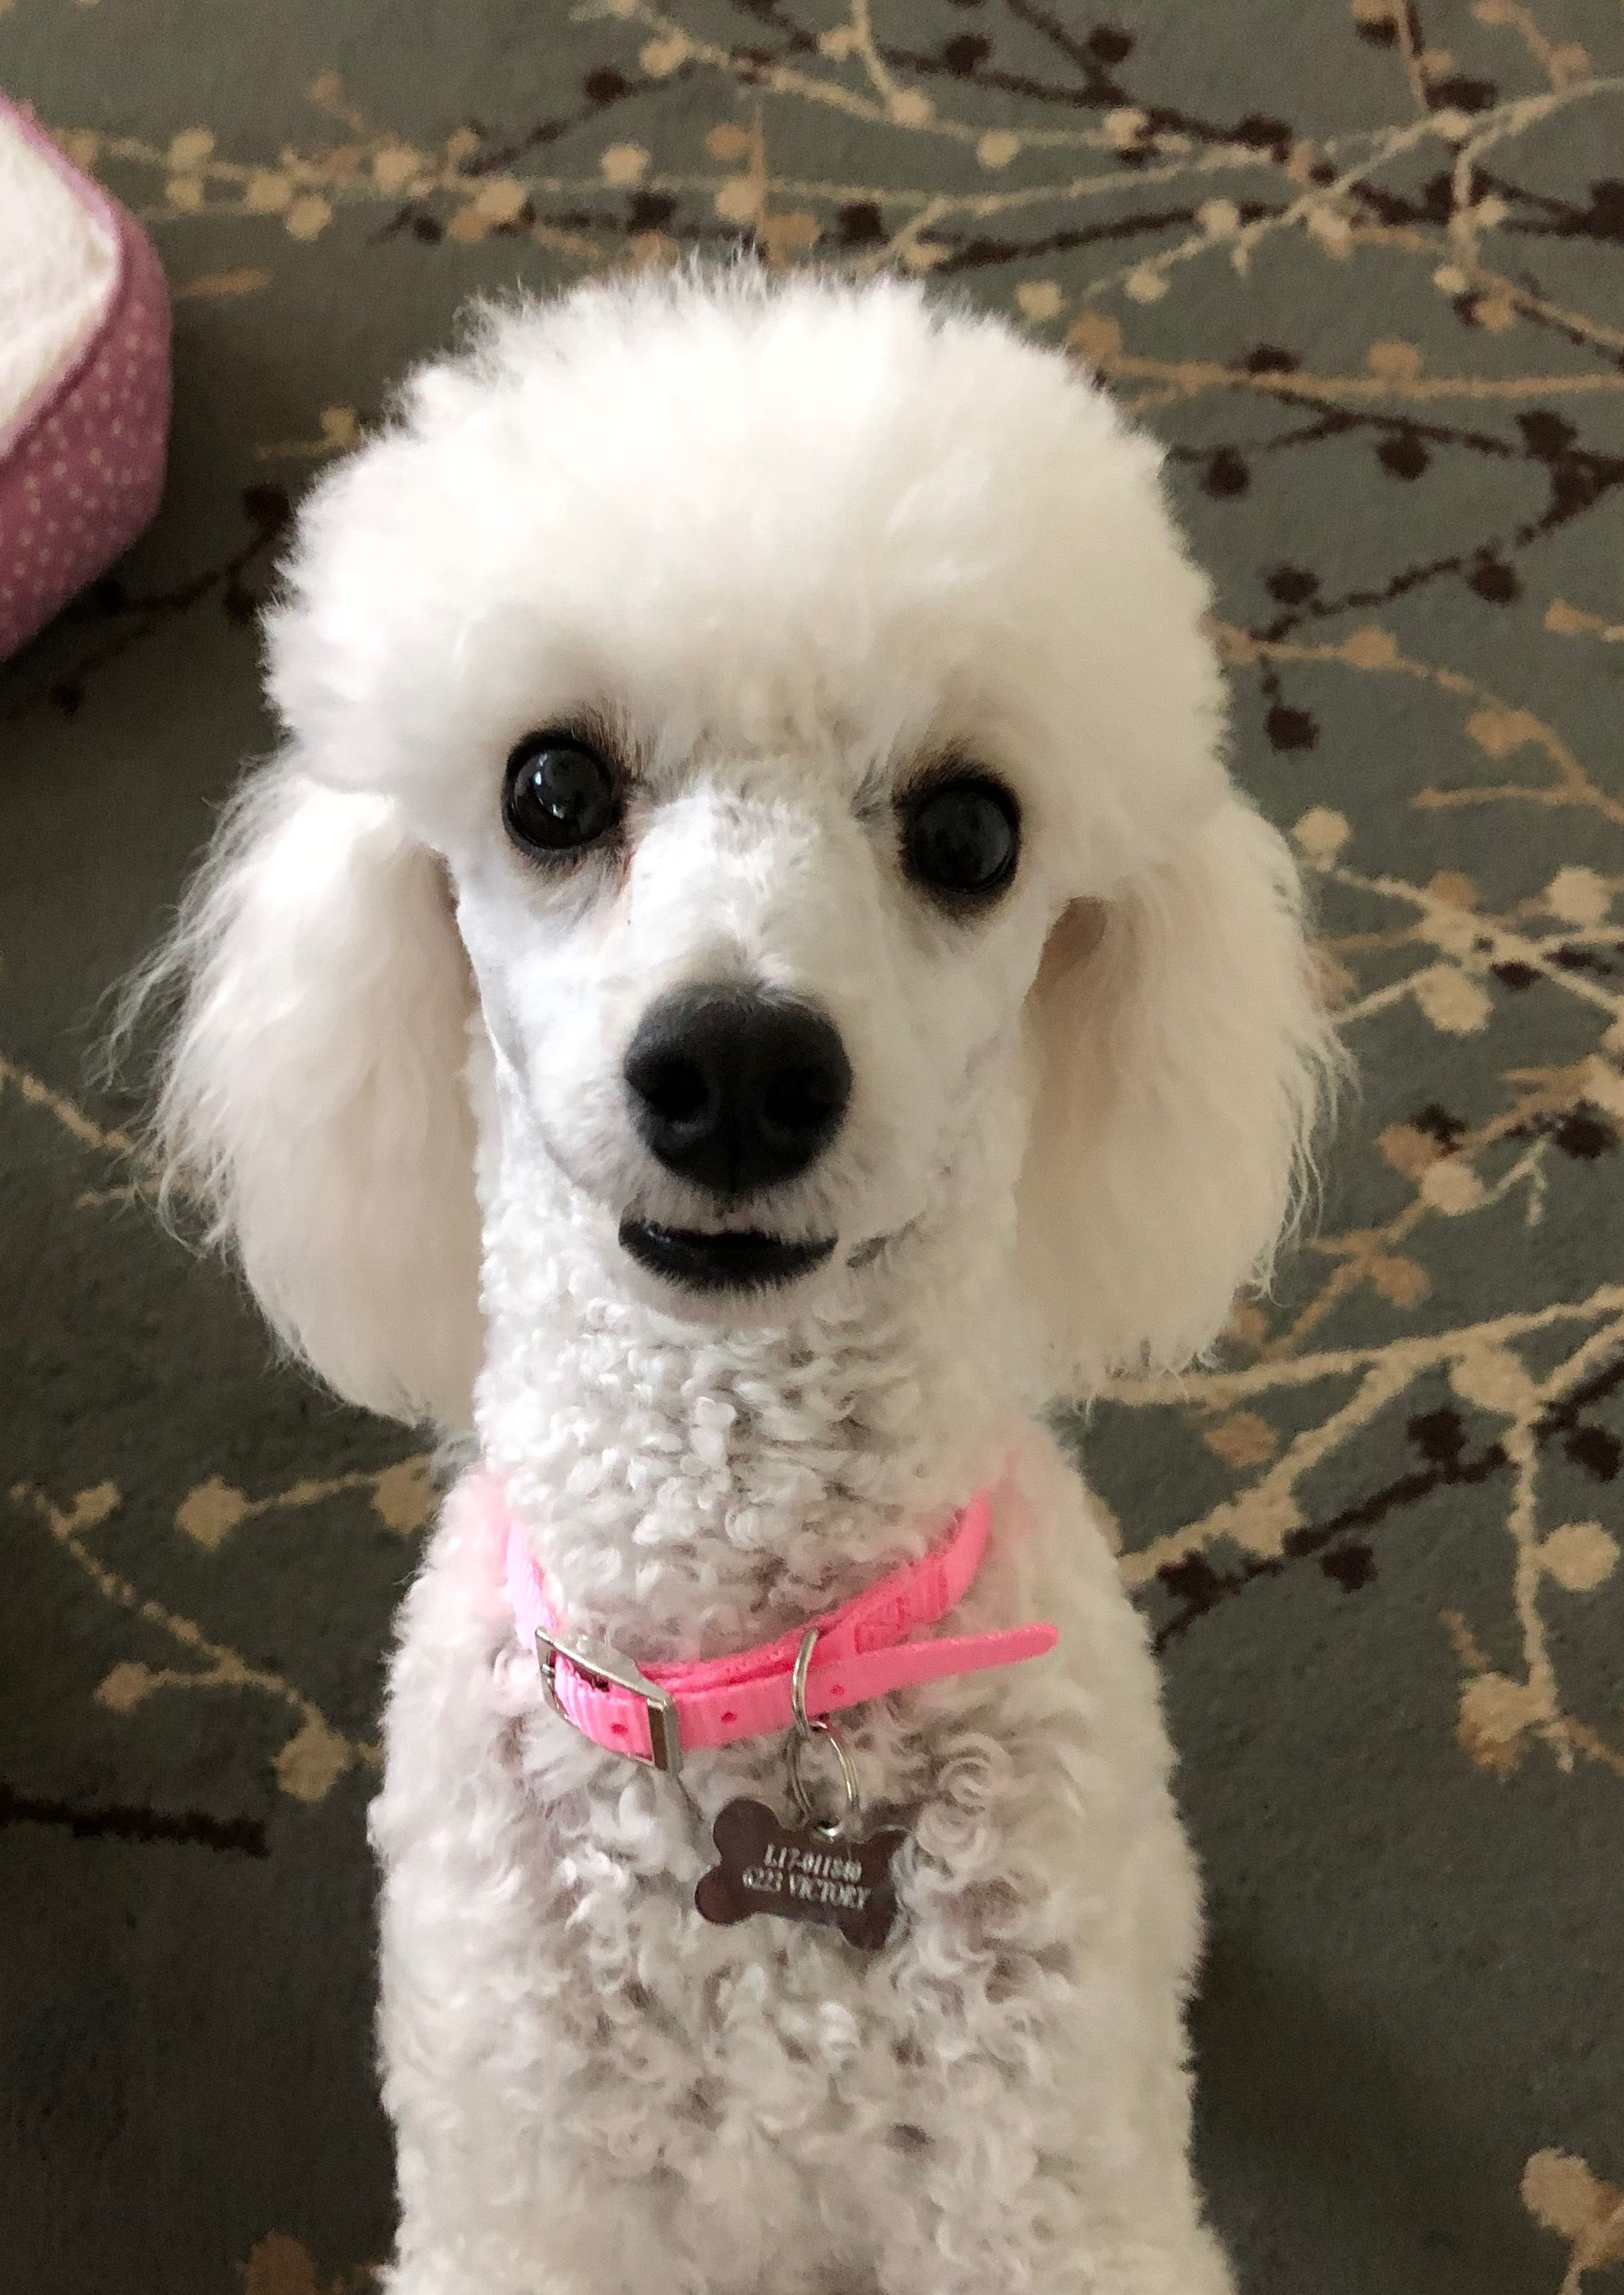 Precious Jolie May 3 2018 Poodle French Poodles Cute Animals